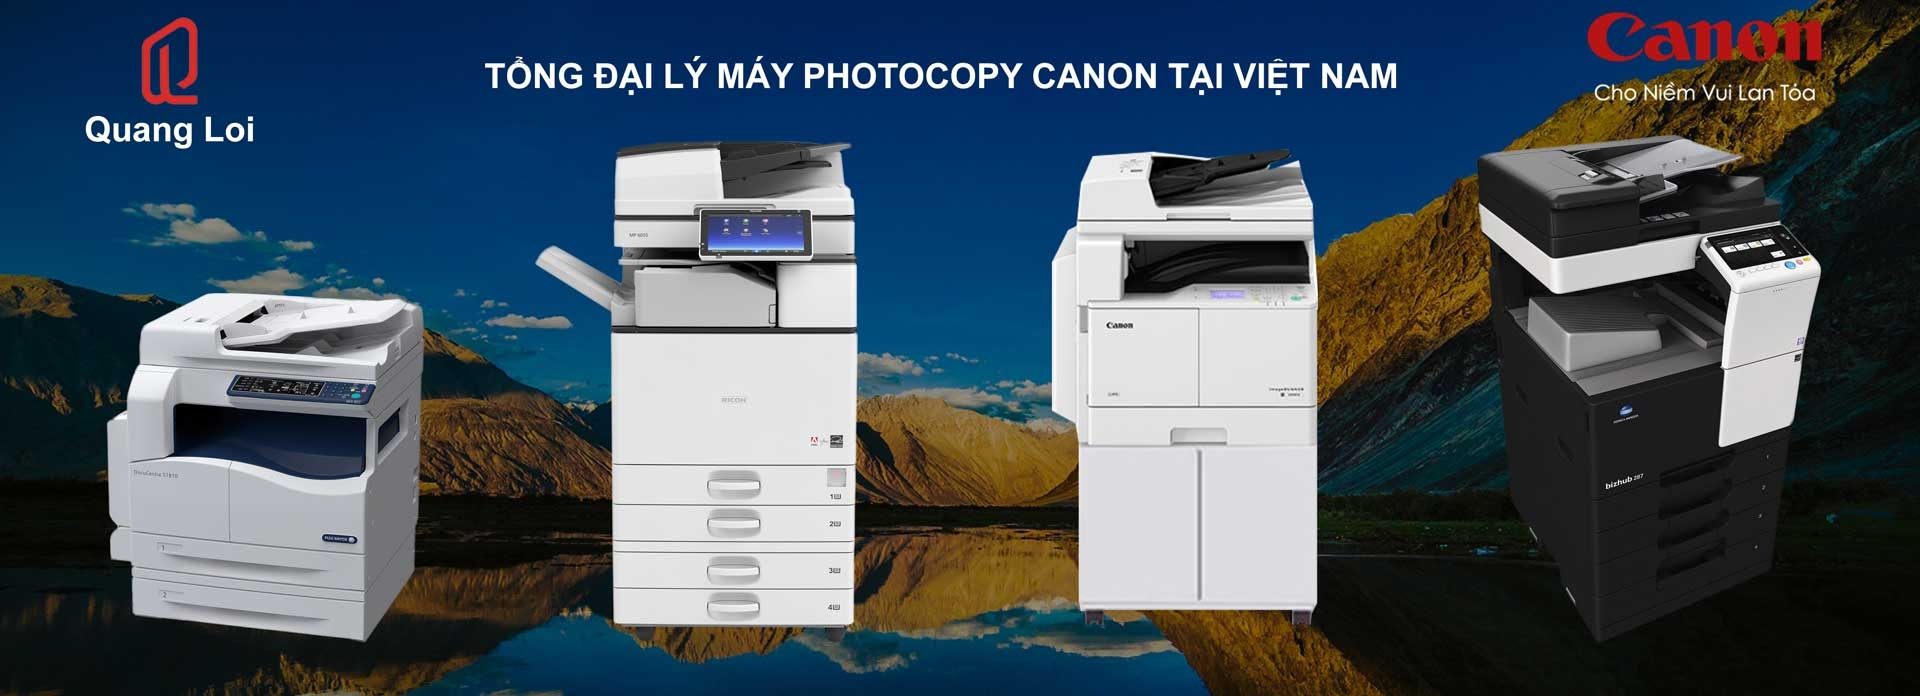 Canon Quảng Lợi (@canonquangloi) Cover Image